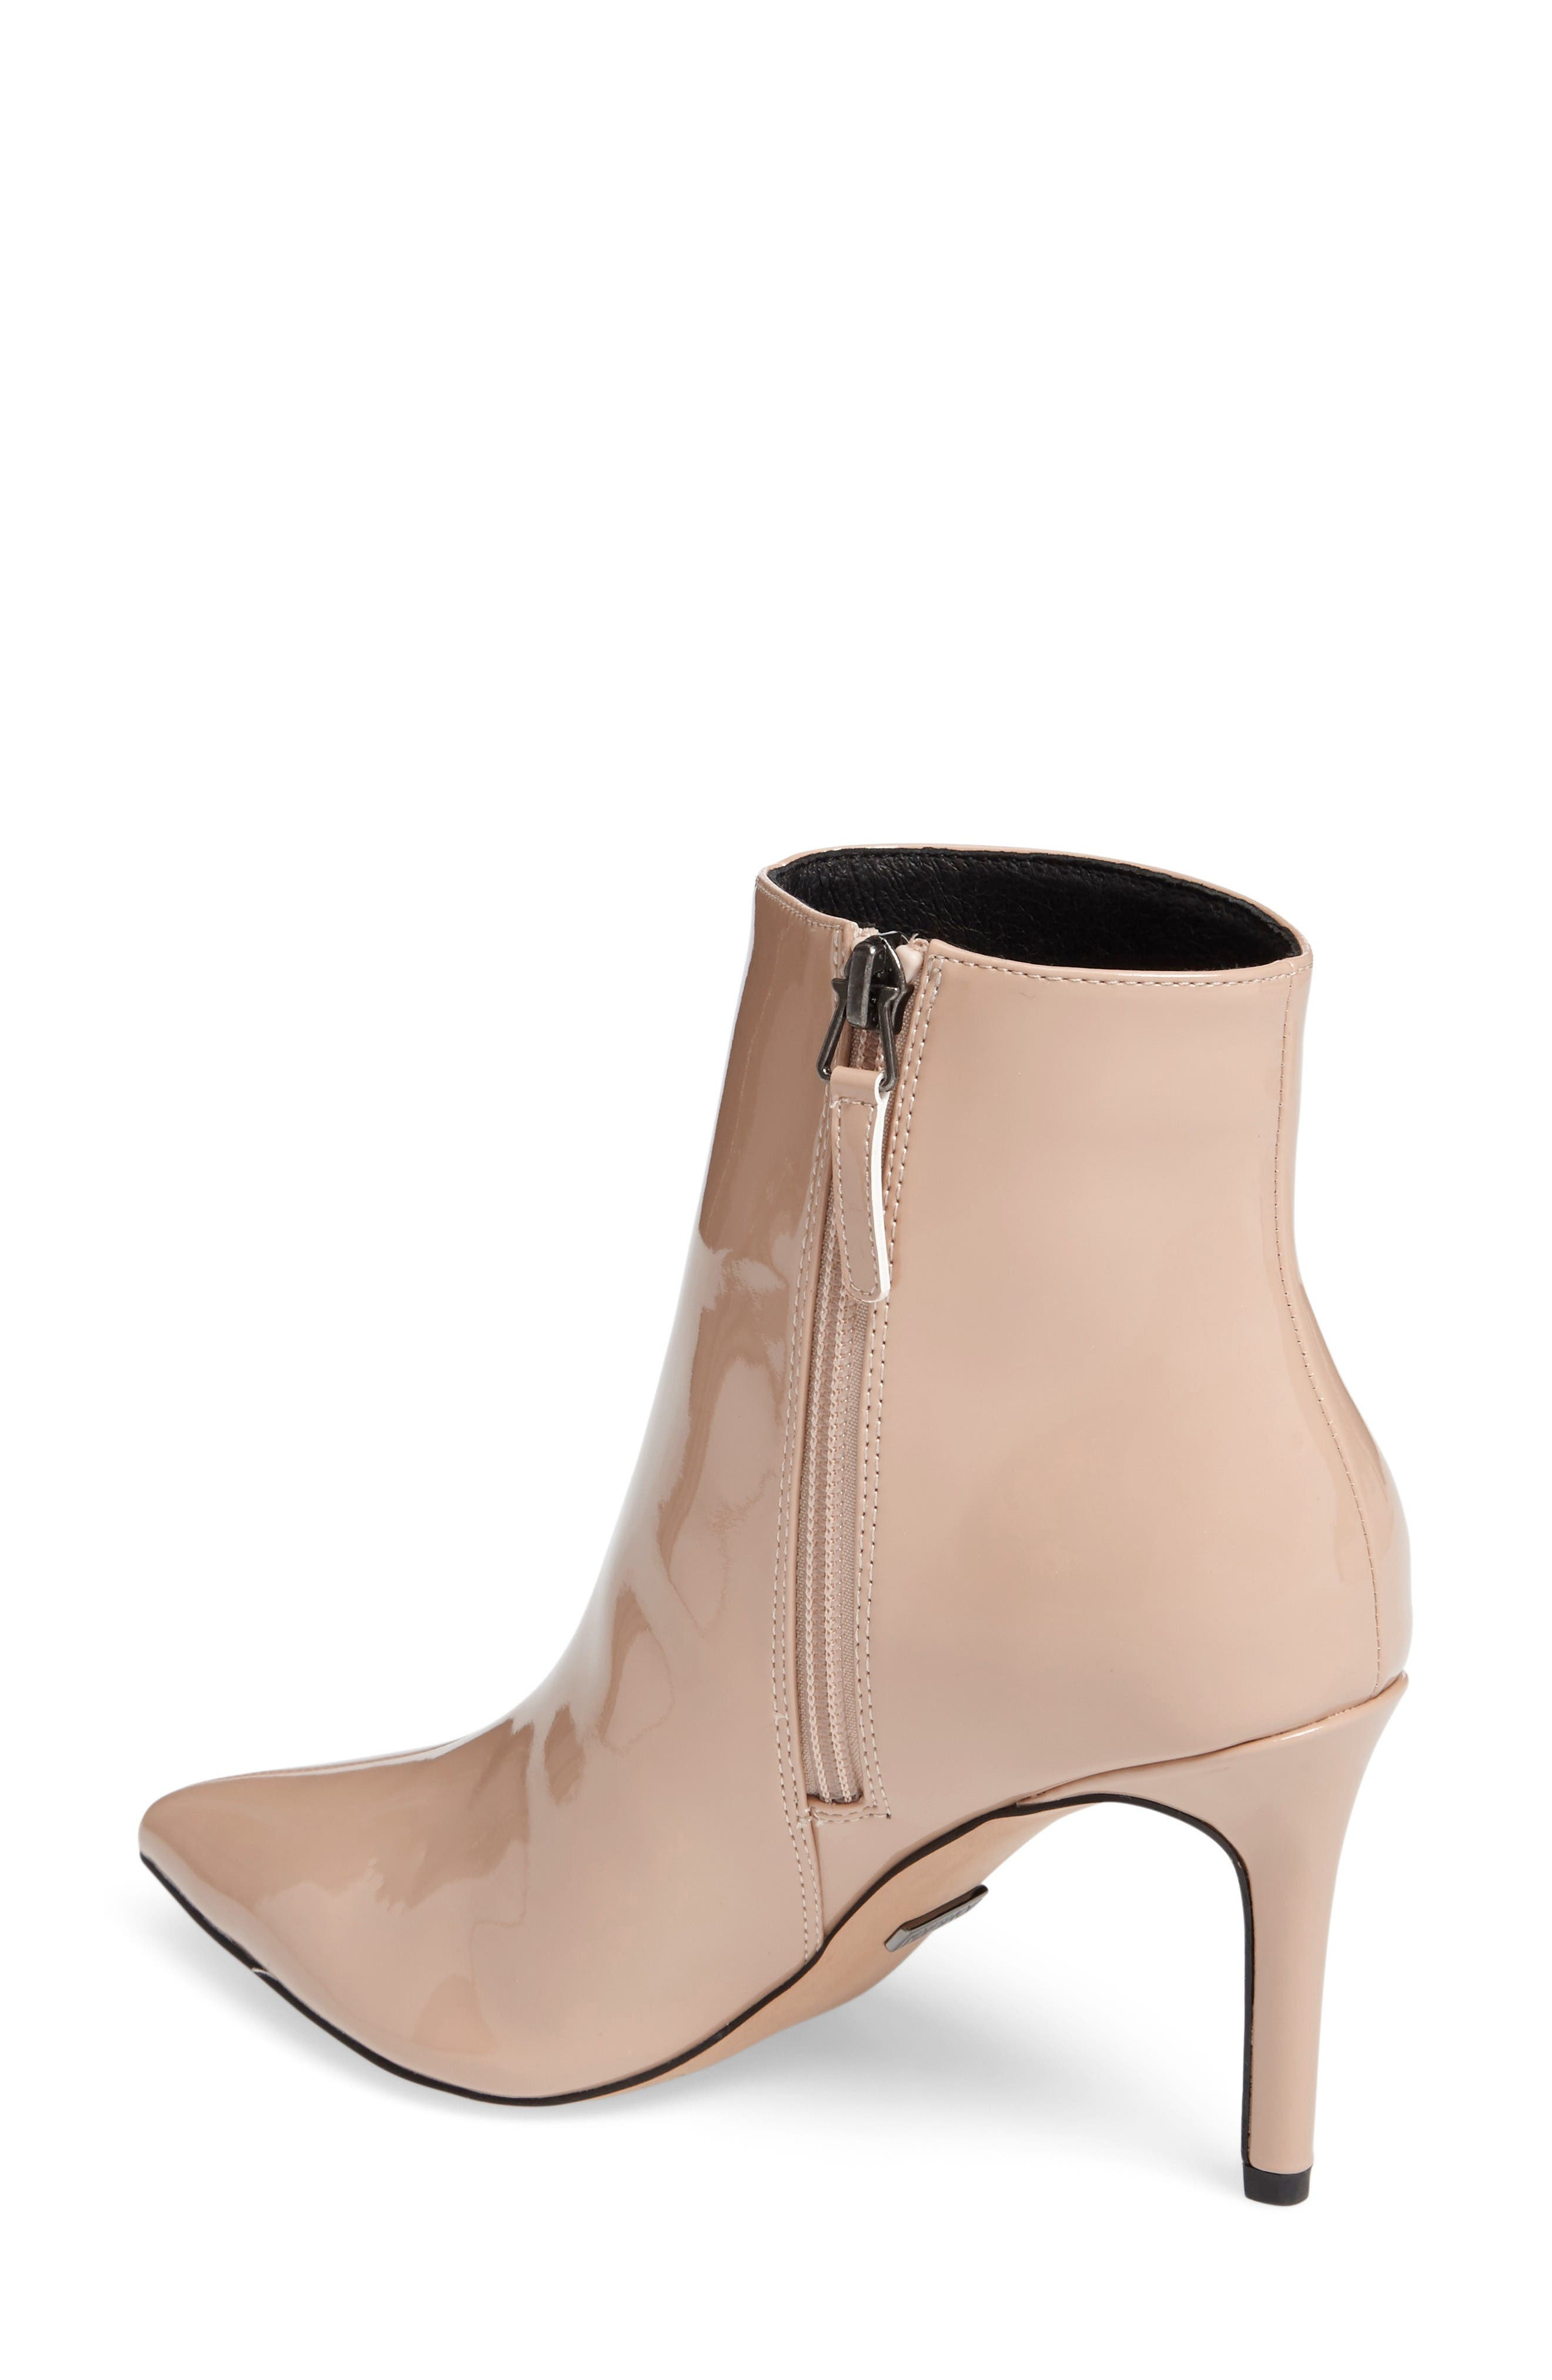 Mimosa Pointy Toe Bootie,                             Alternate thumbnail 2, color,                             Nude